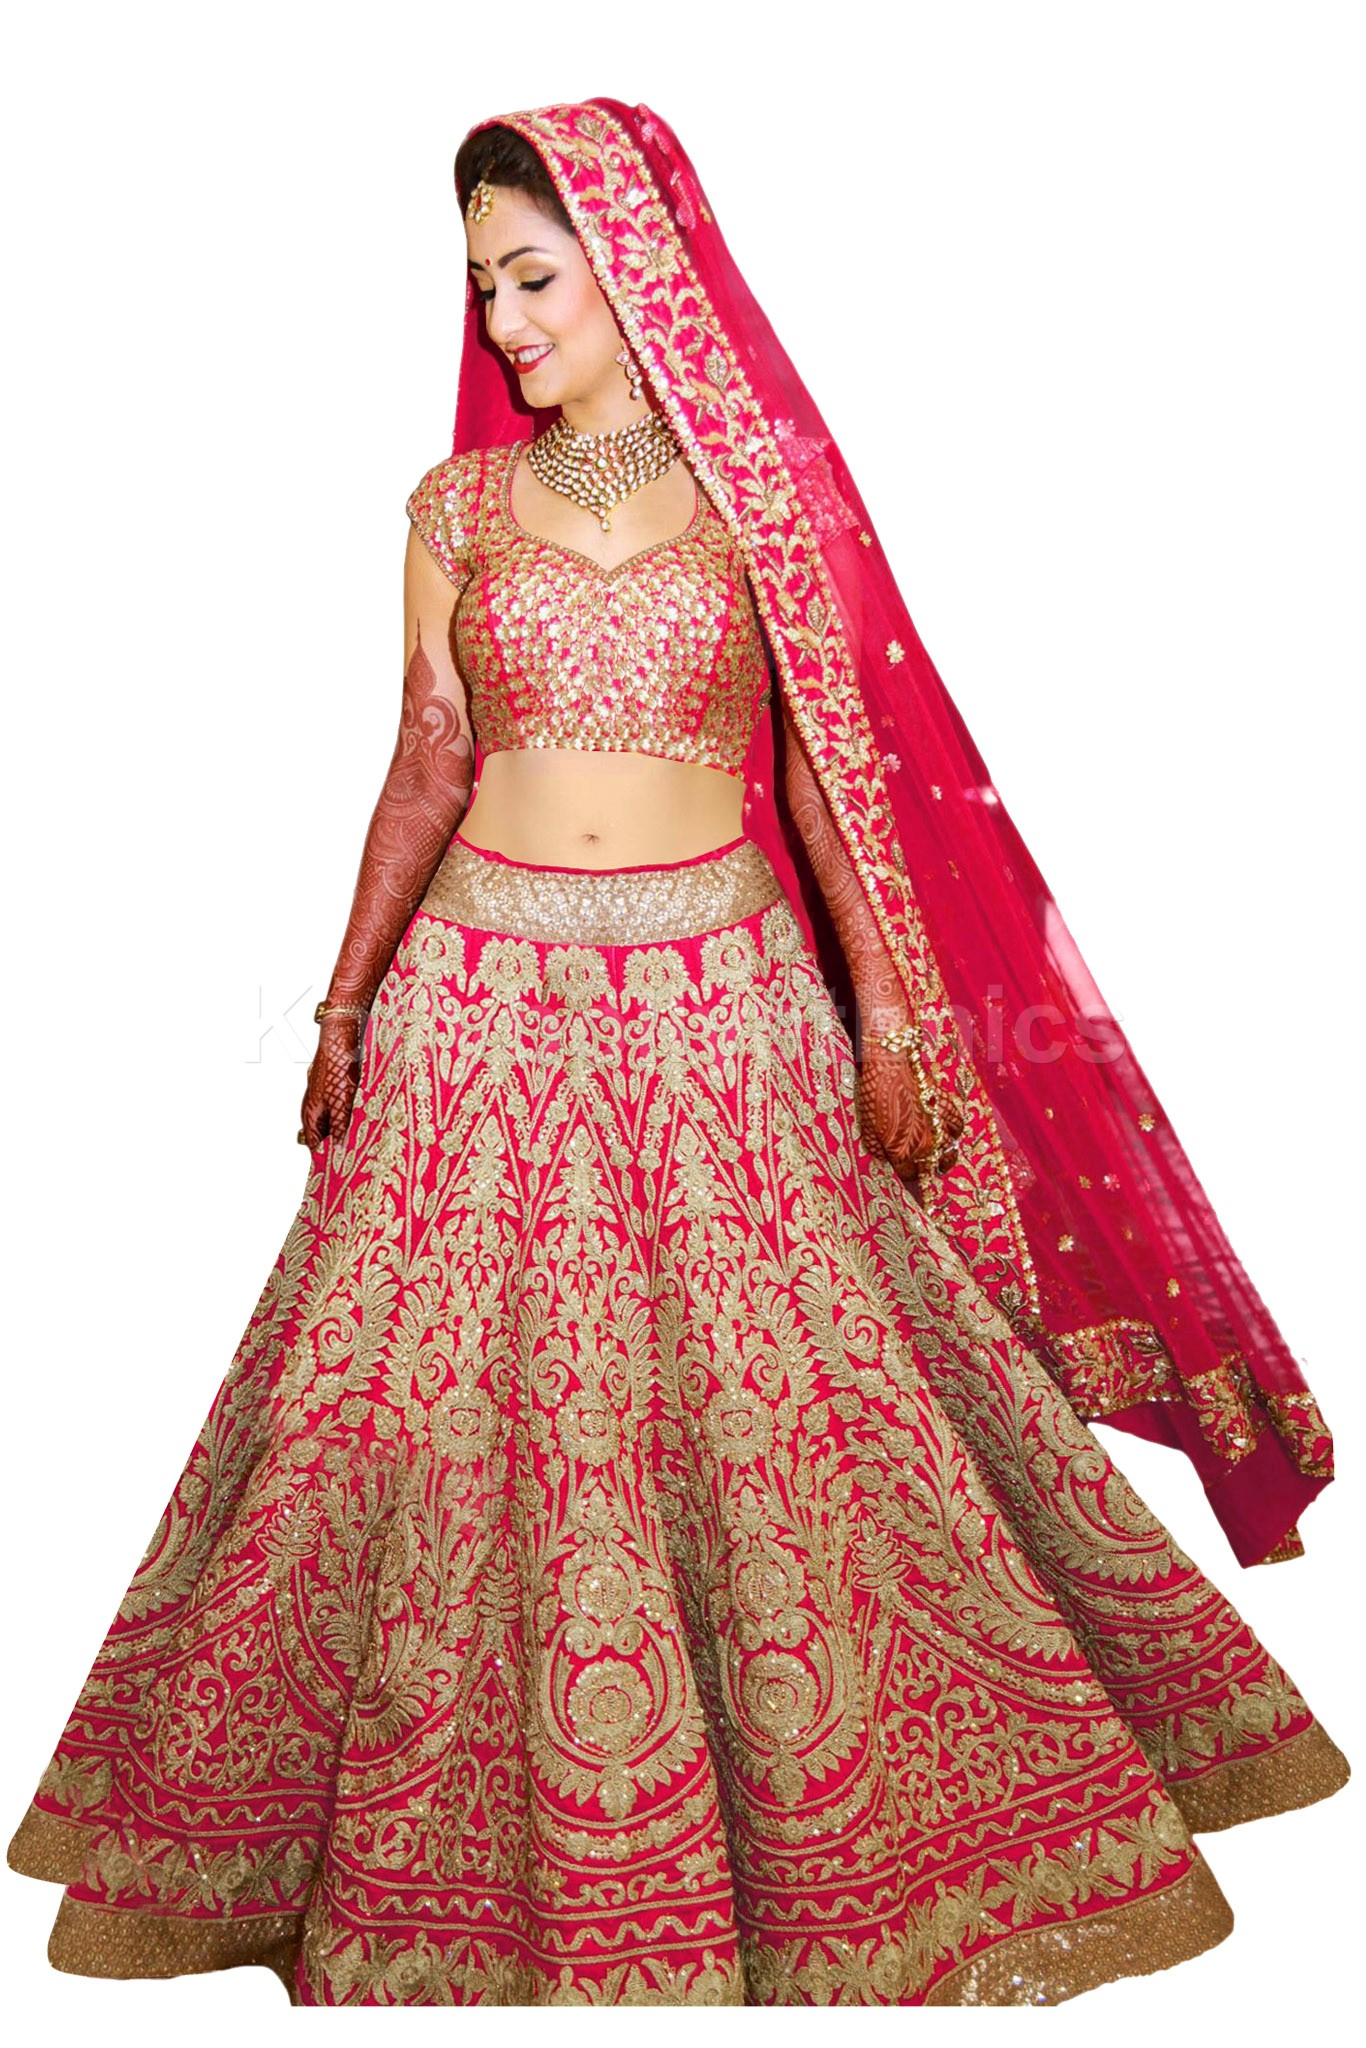 626fb6fdb2 Buy Bollywood model pink color raw silk wedding lehenga choli in UK ...